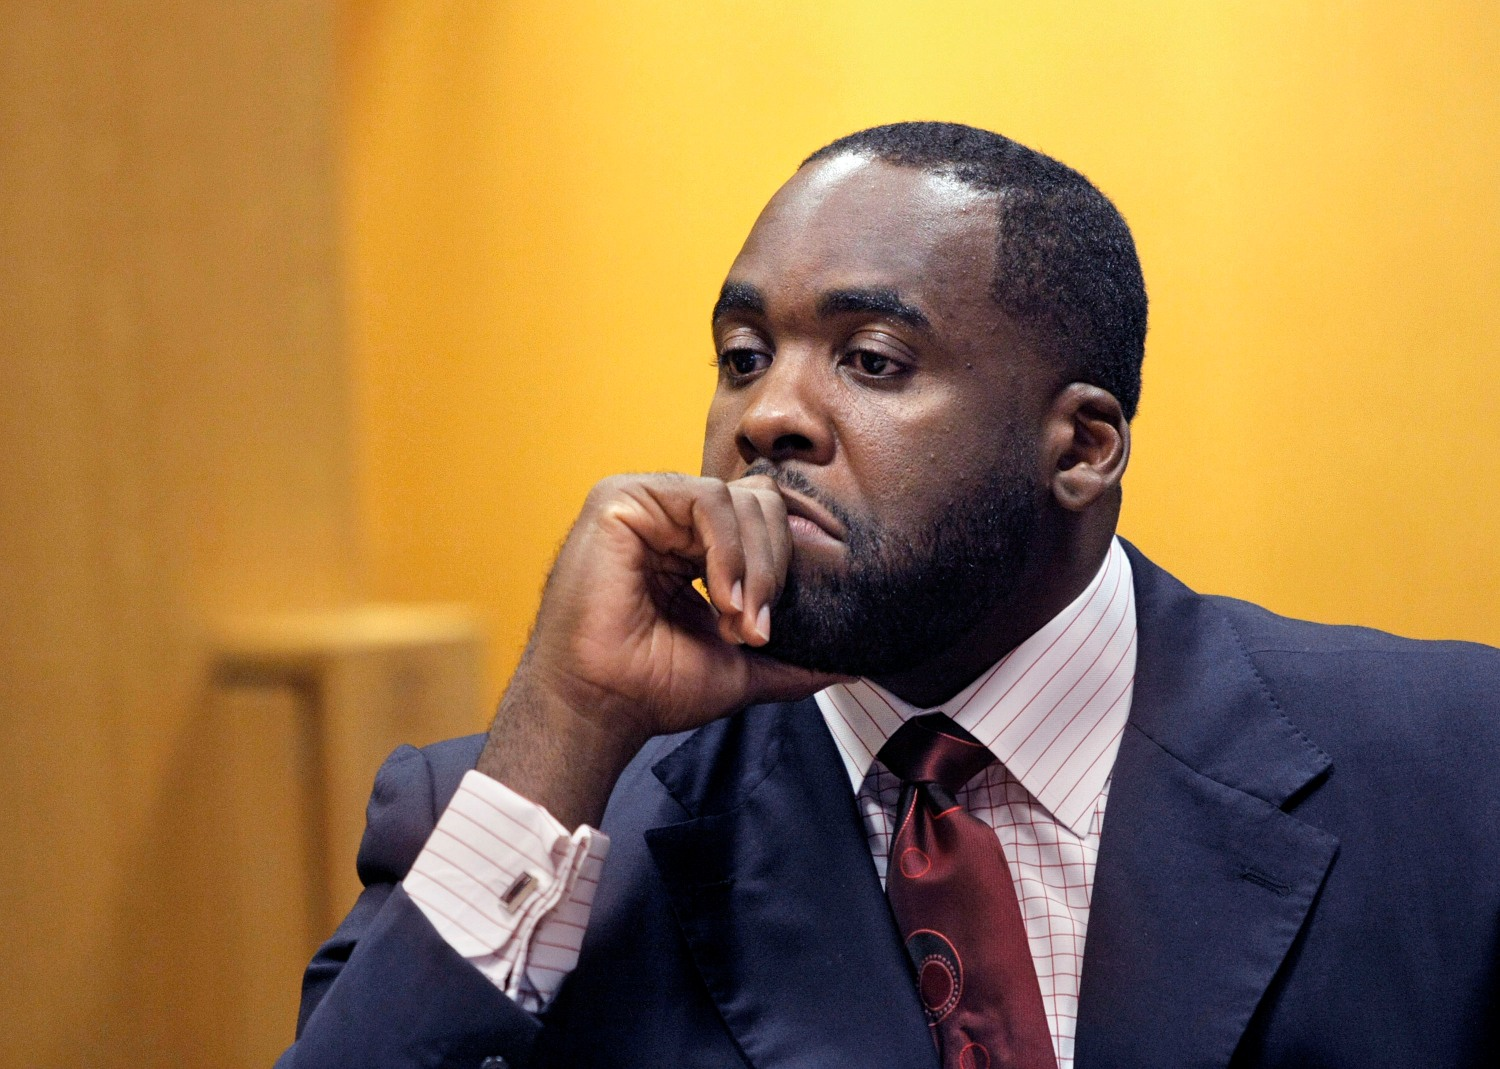 kwame kilpatrick - photo #20